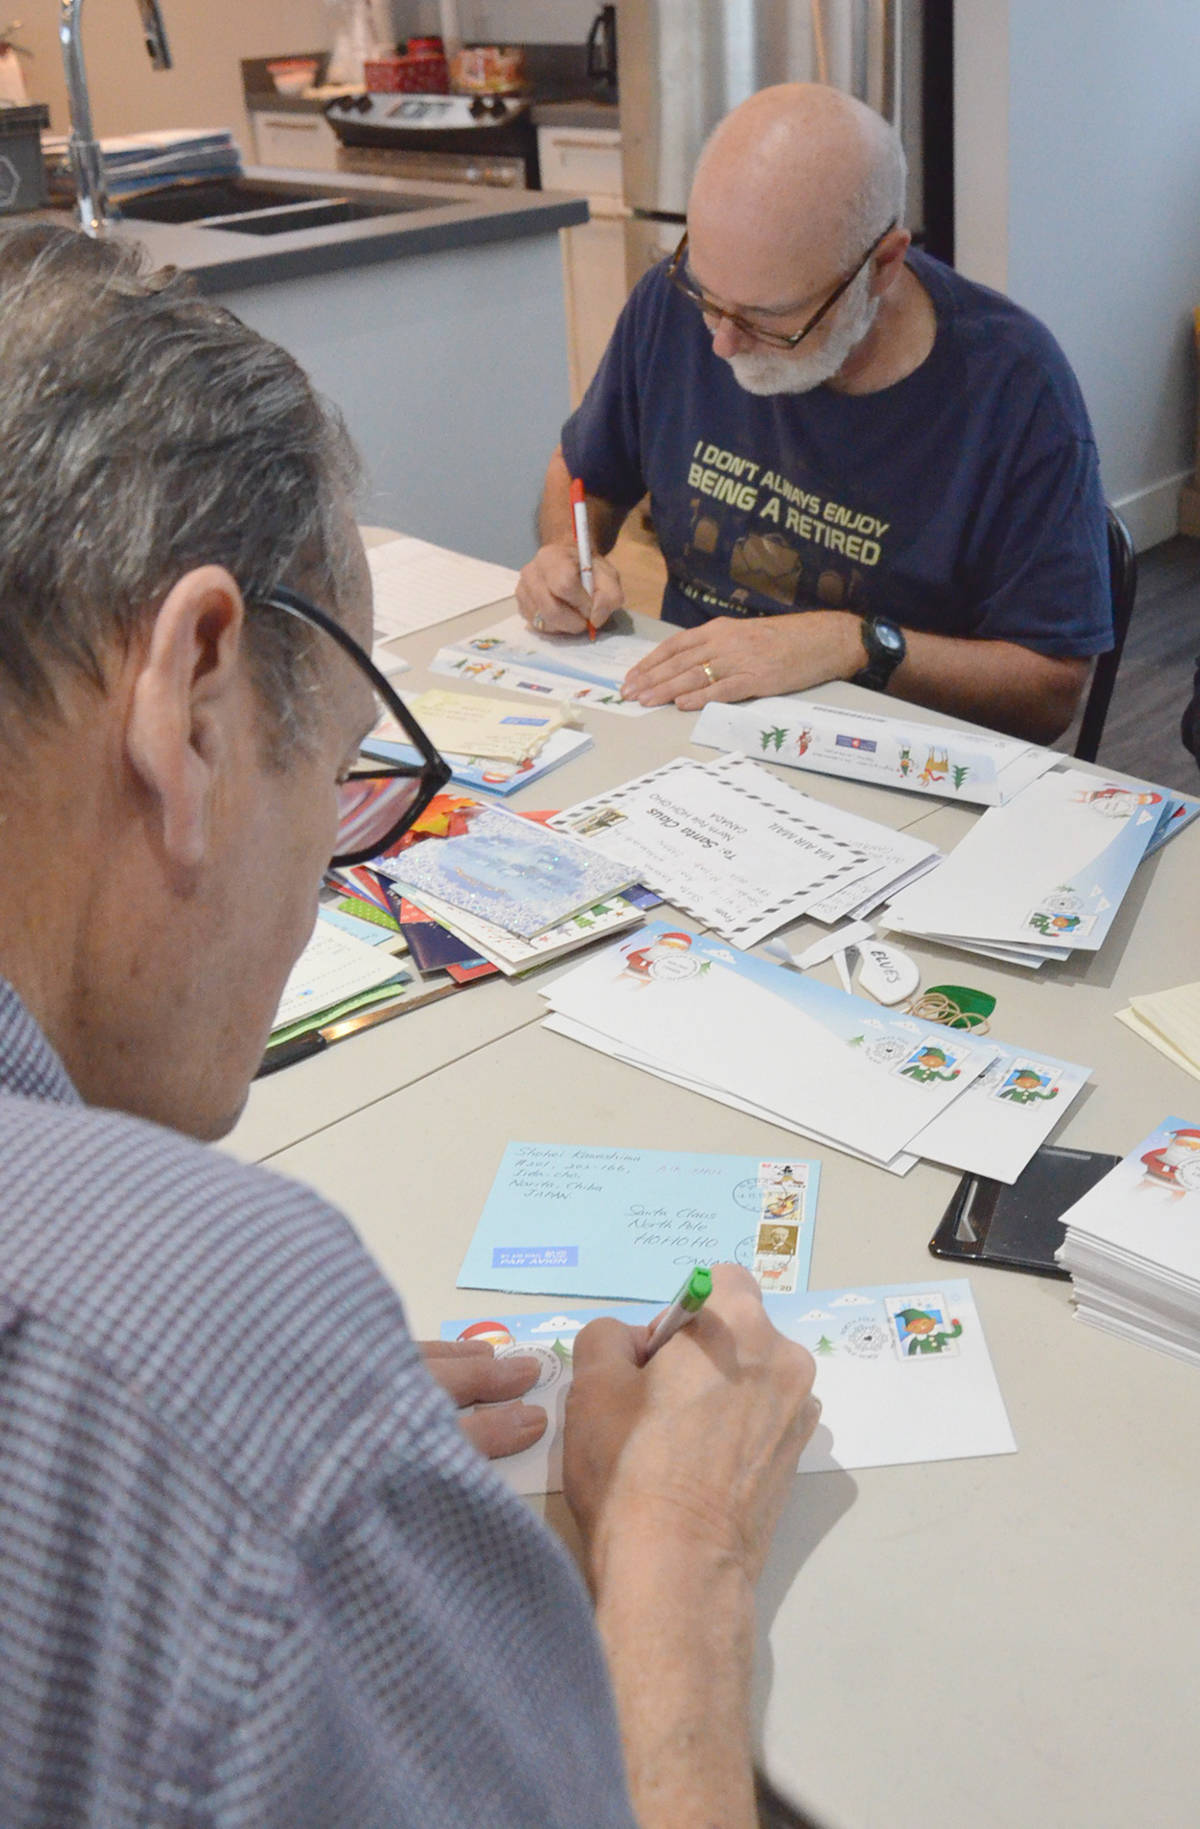 Bruce Mavis and Steve Pasacreta are local volunteers who help with letters to Santa. (Heather Colpitts/Langley Advance Times)